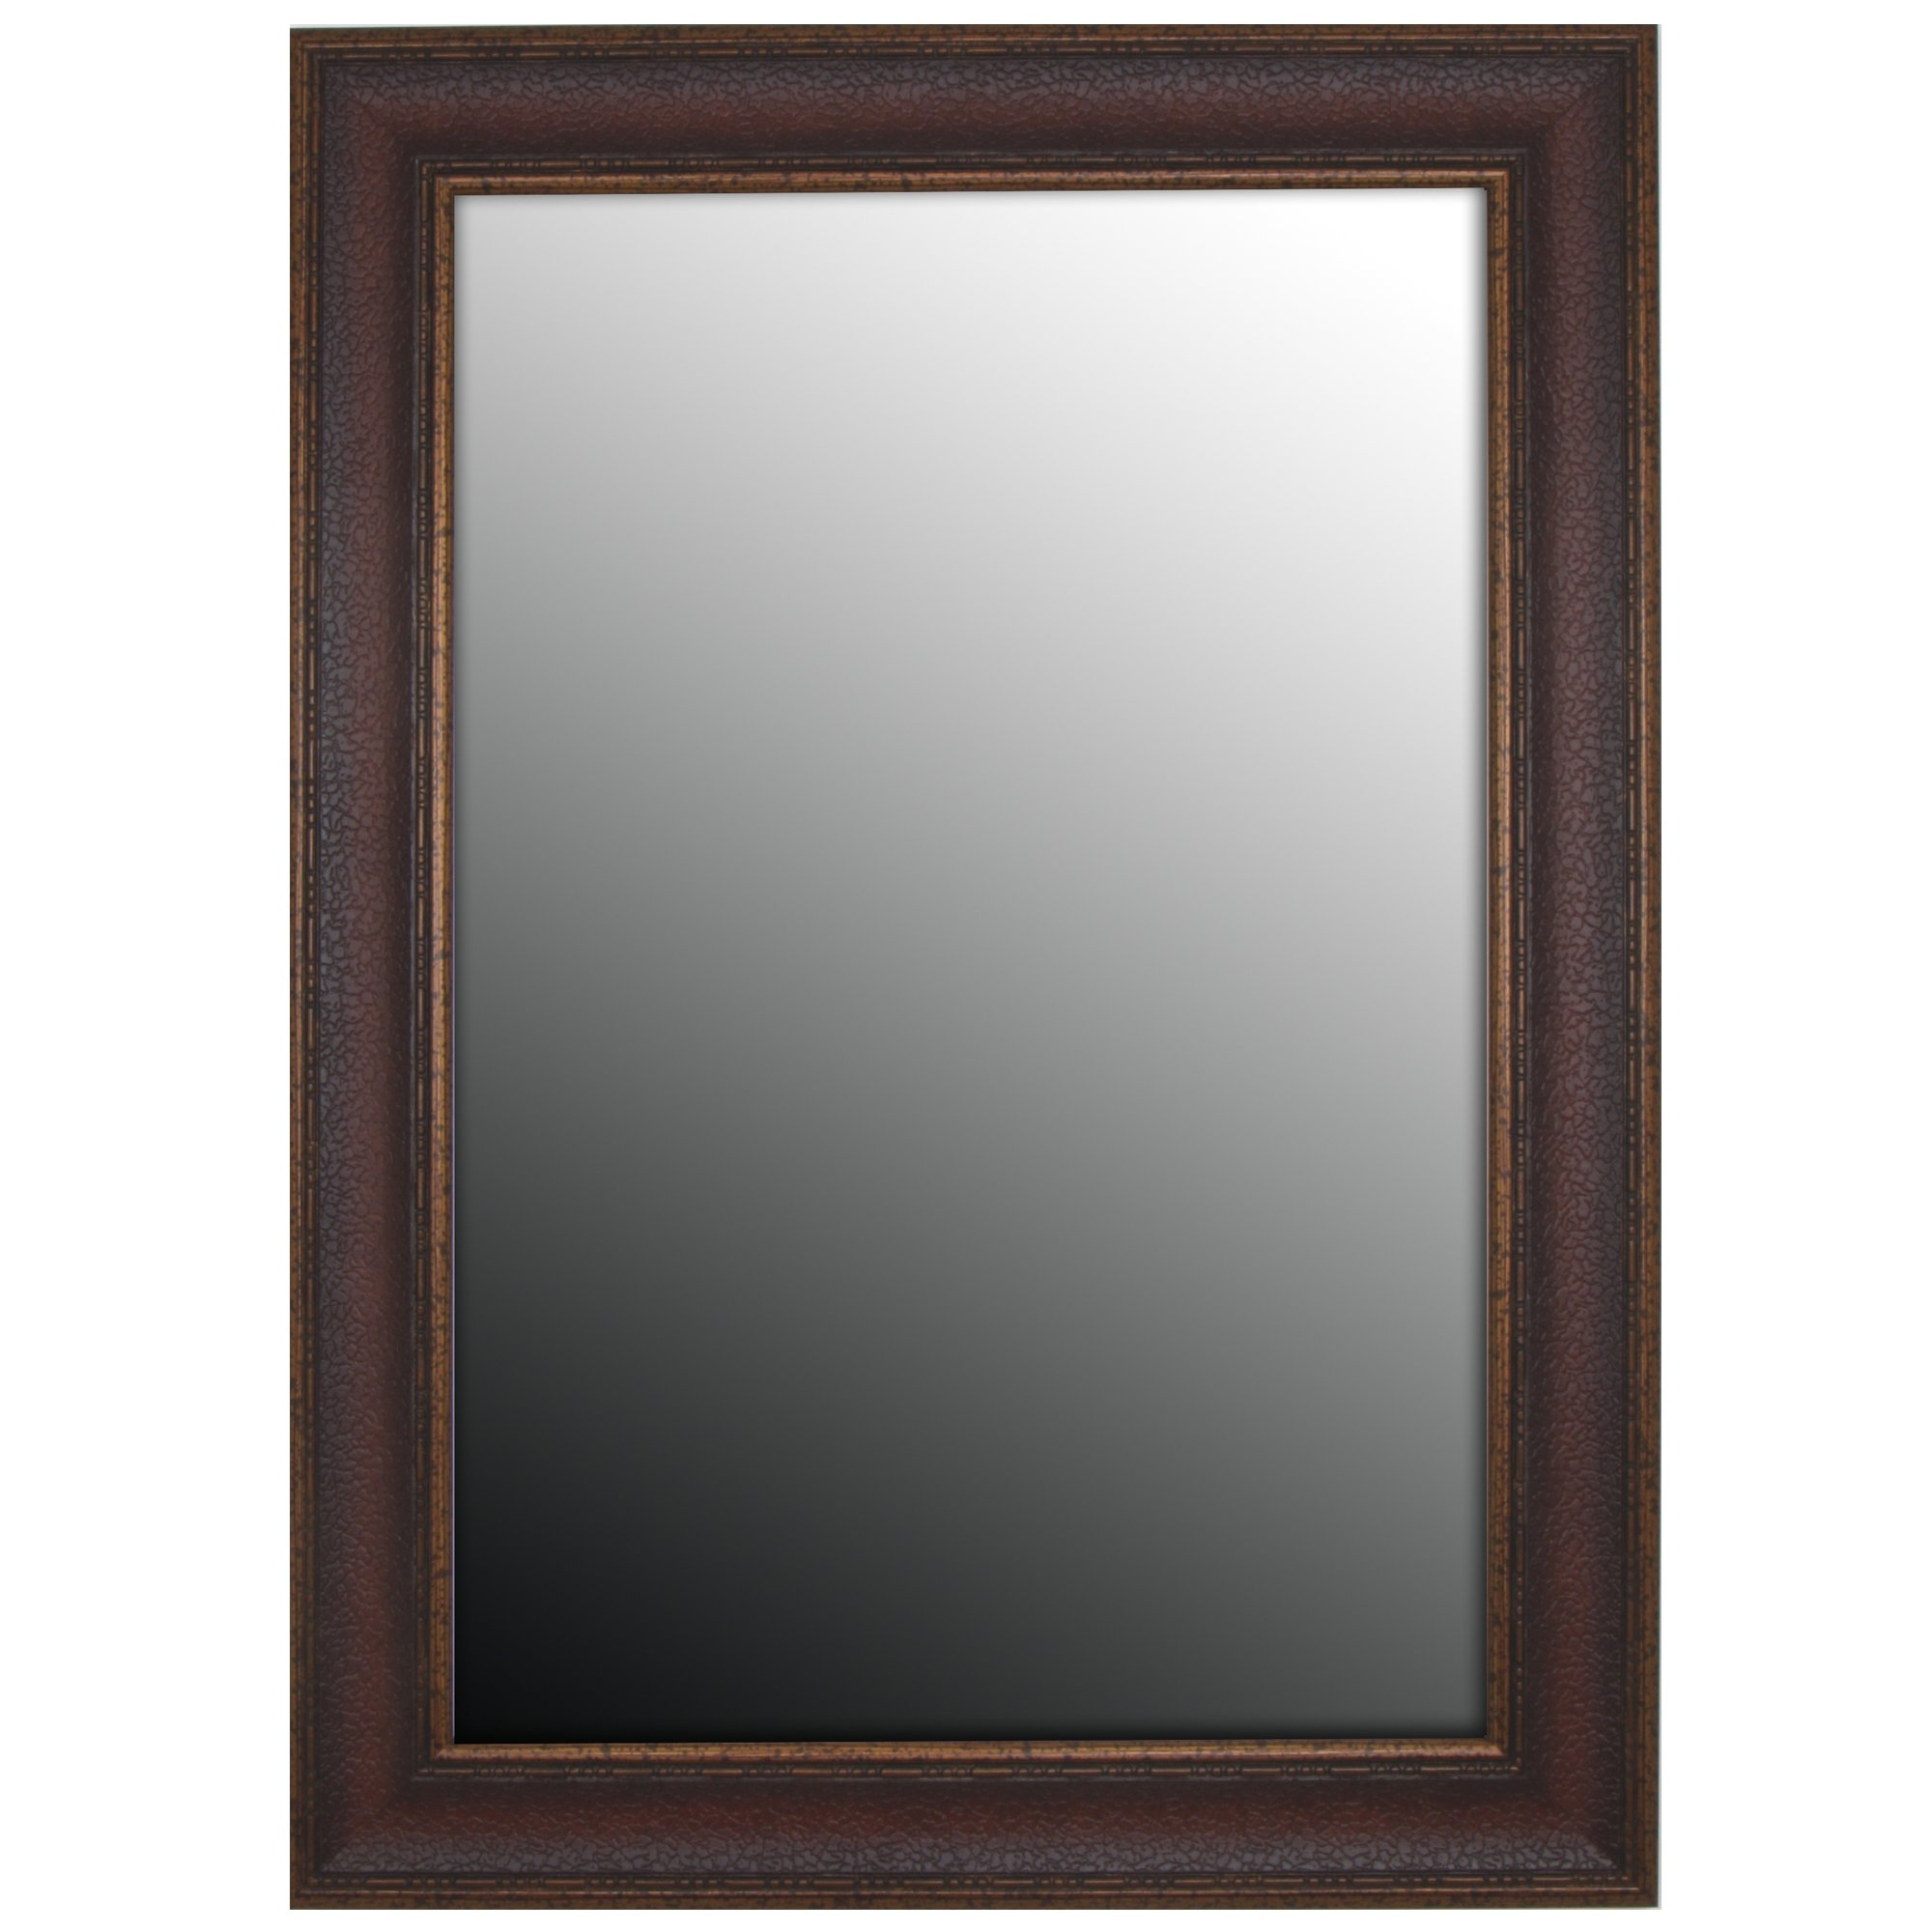 Second Look Mirrors Copper Embossed Bronze Wall Mirror Reviews For Bronze Wall Mirrors (Image 8 of 15)